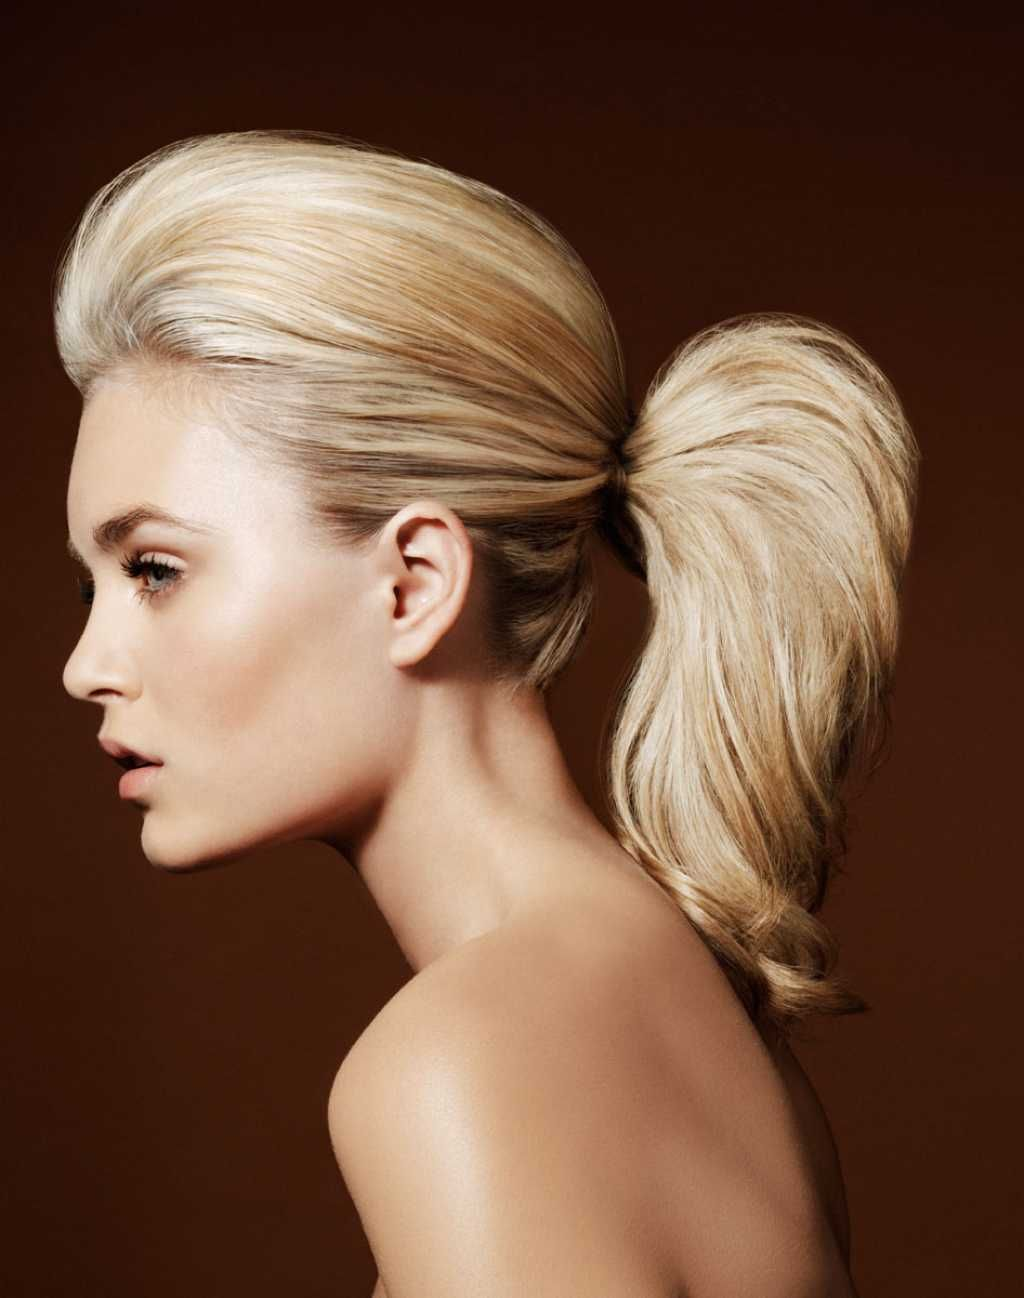 Hairstyle for medium length hair - low bouffant ponytail  :: one1lady.com :: #hair #hairs #hairstyle #hairstyles